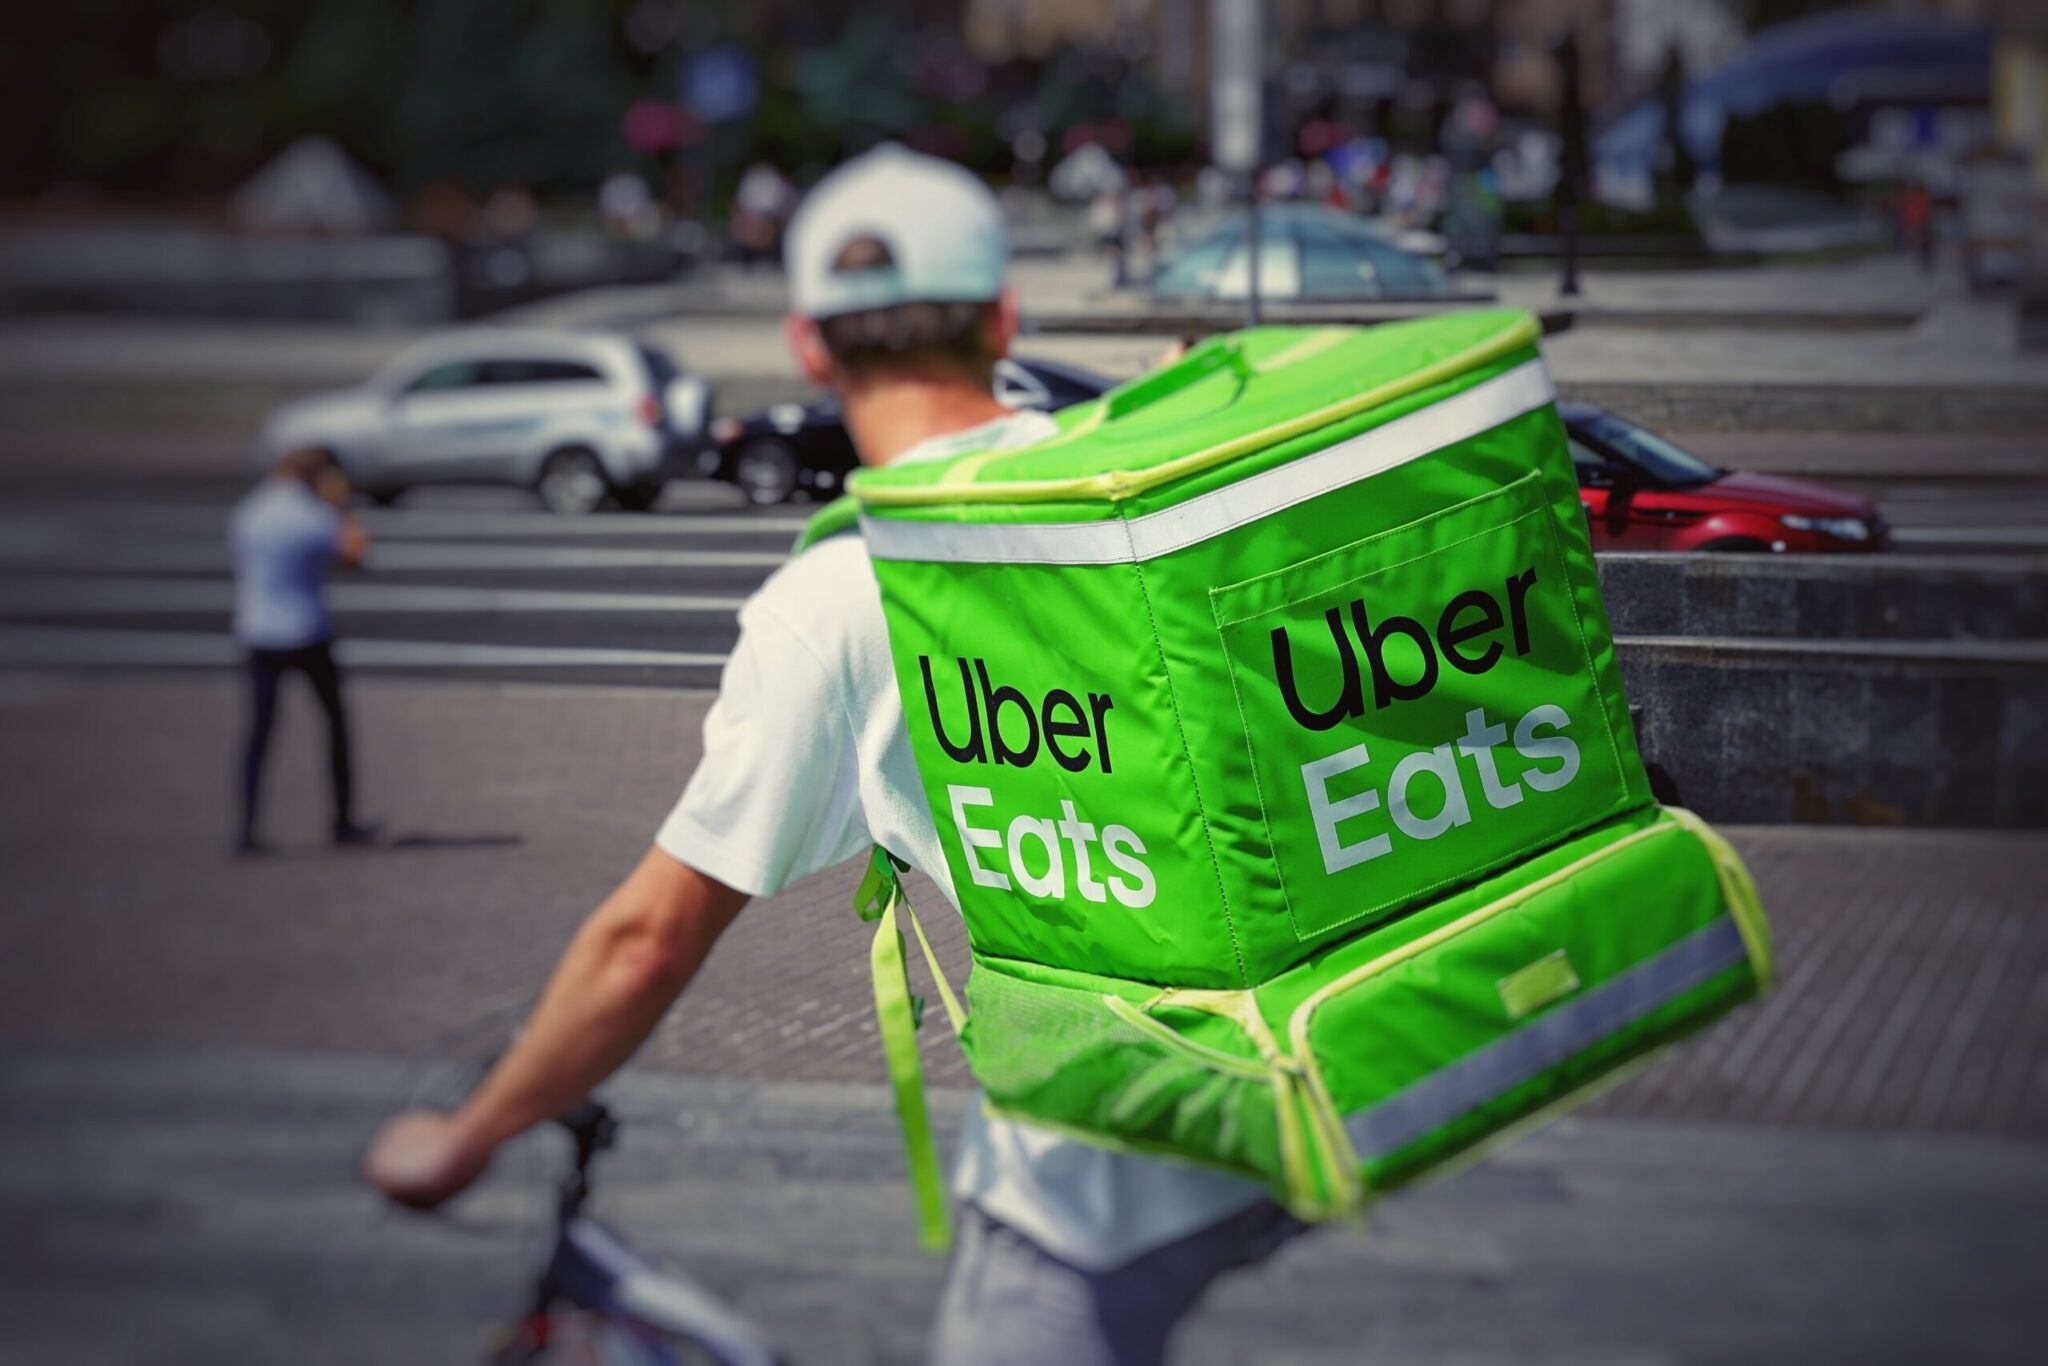 An Ubereats delivery person on a bike